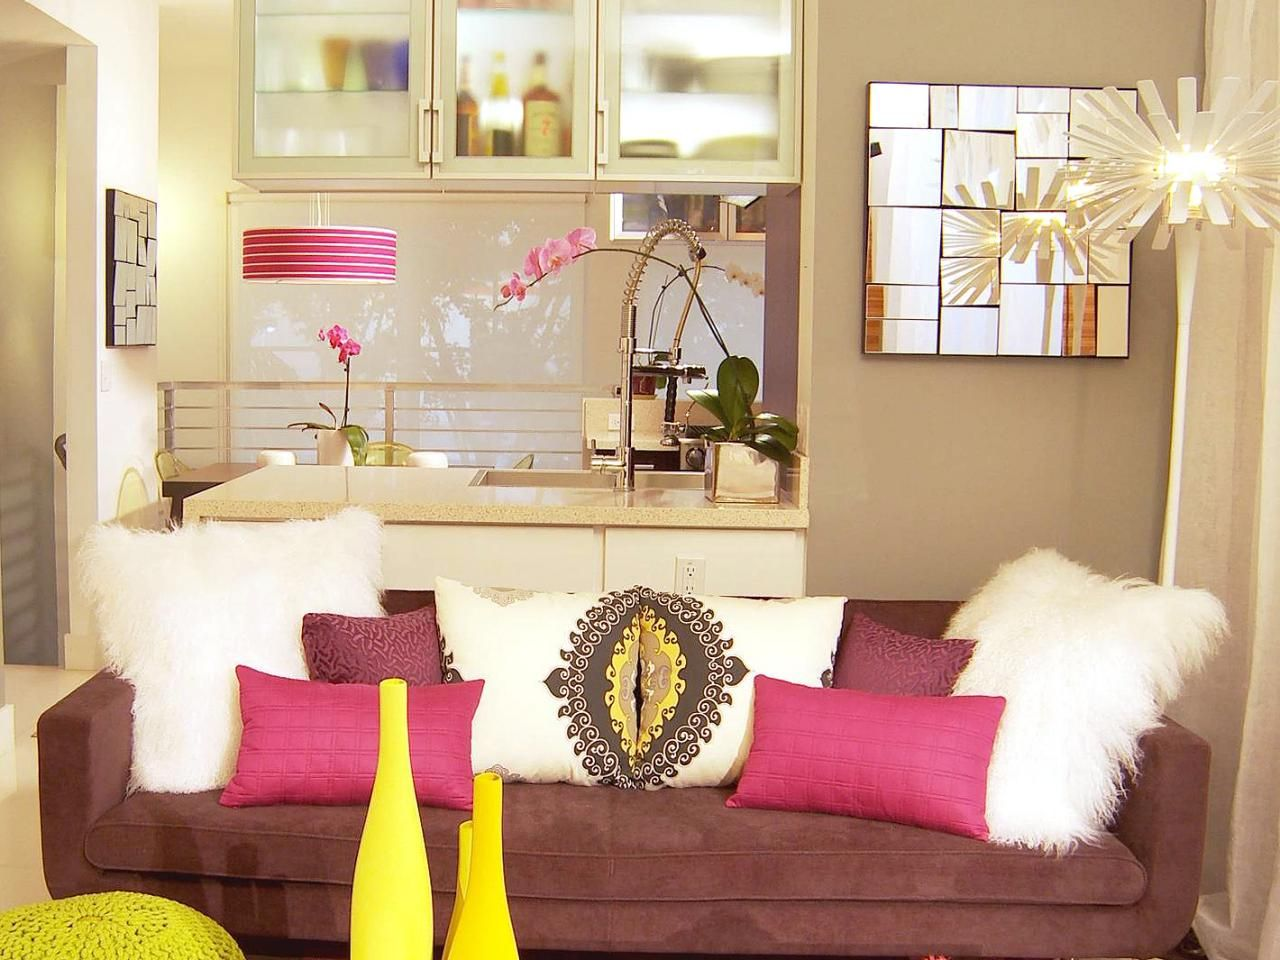 Decorating with Pillows Home Decor Accessories